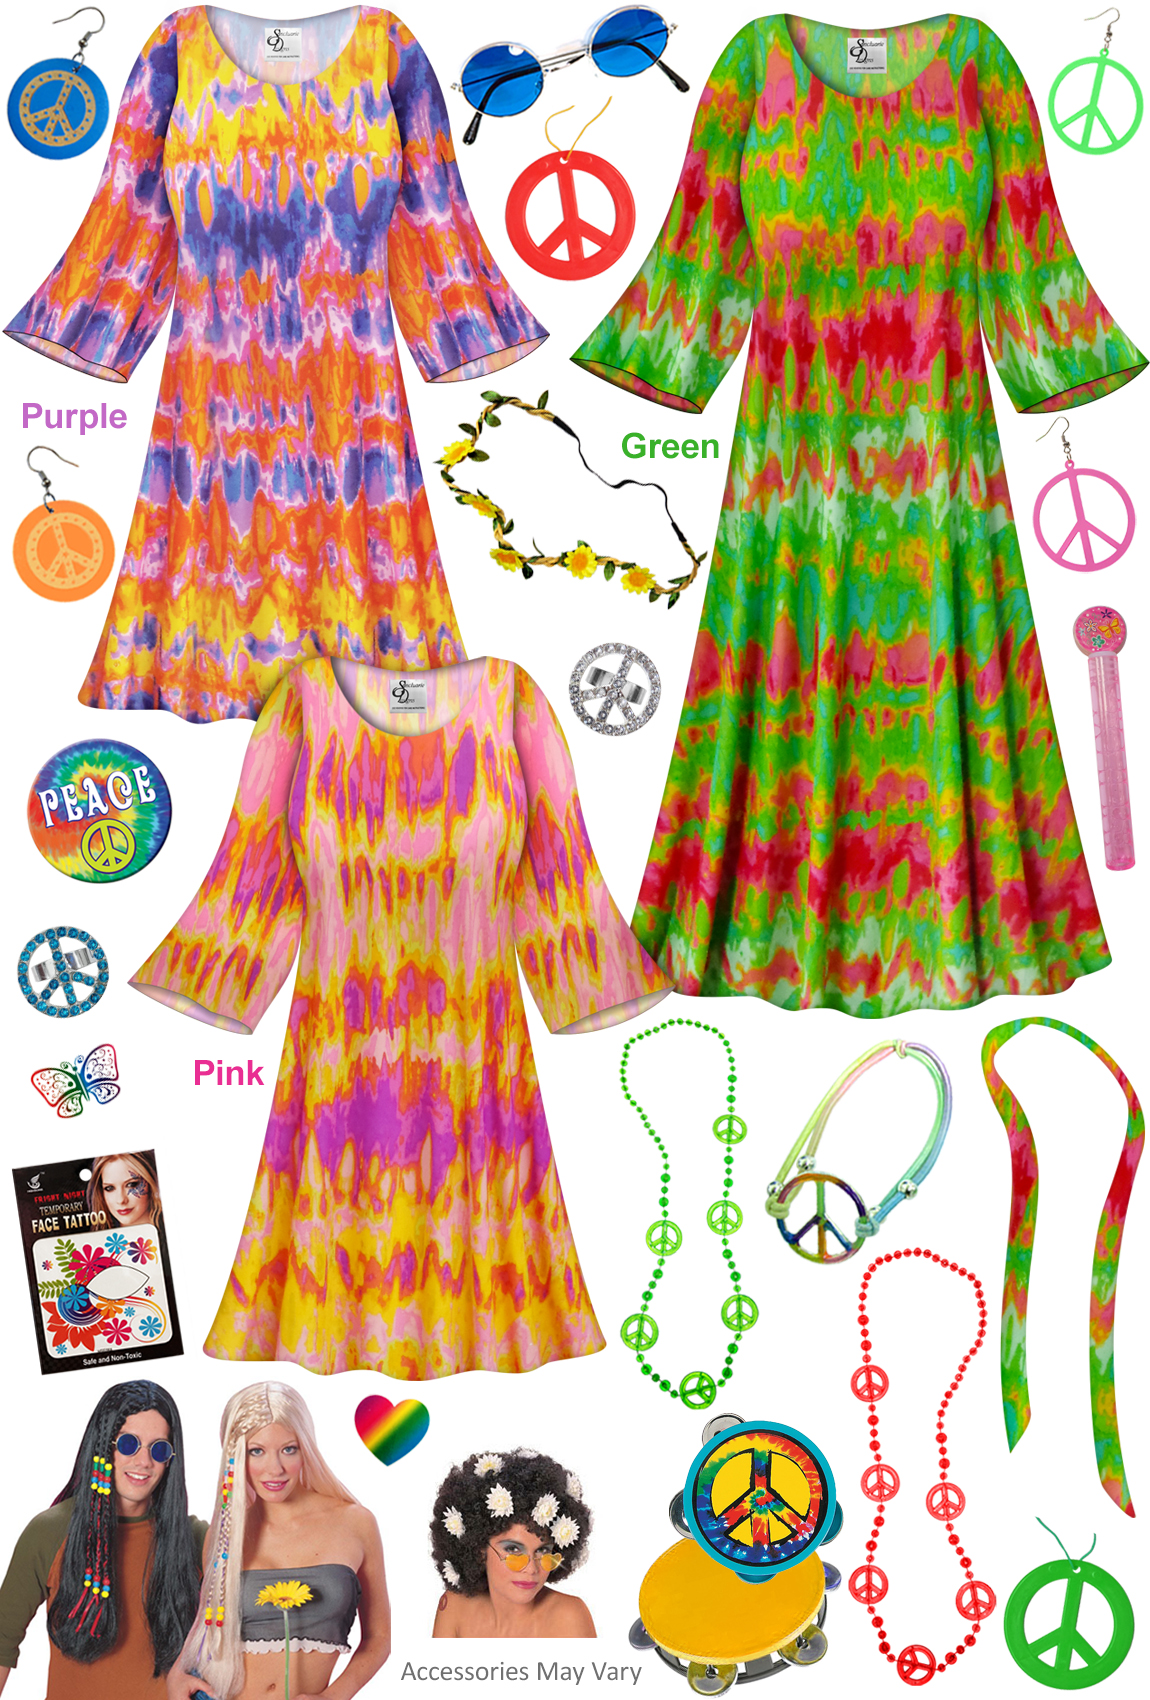 sale! heat wave print hippie dress - 60's style retro plus size